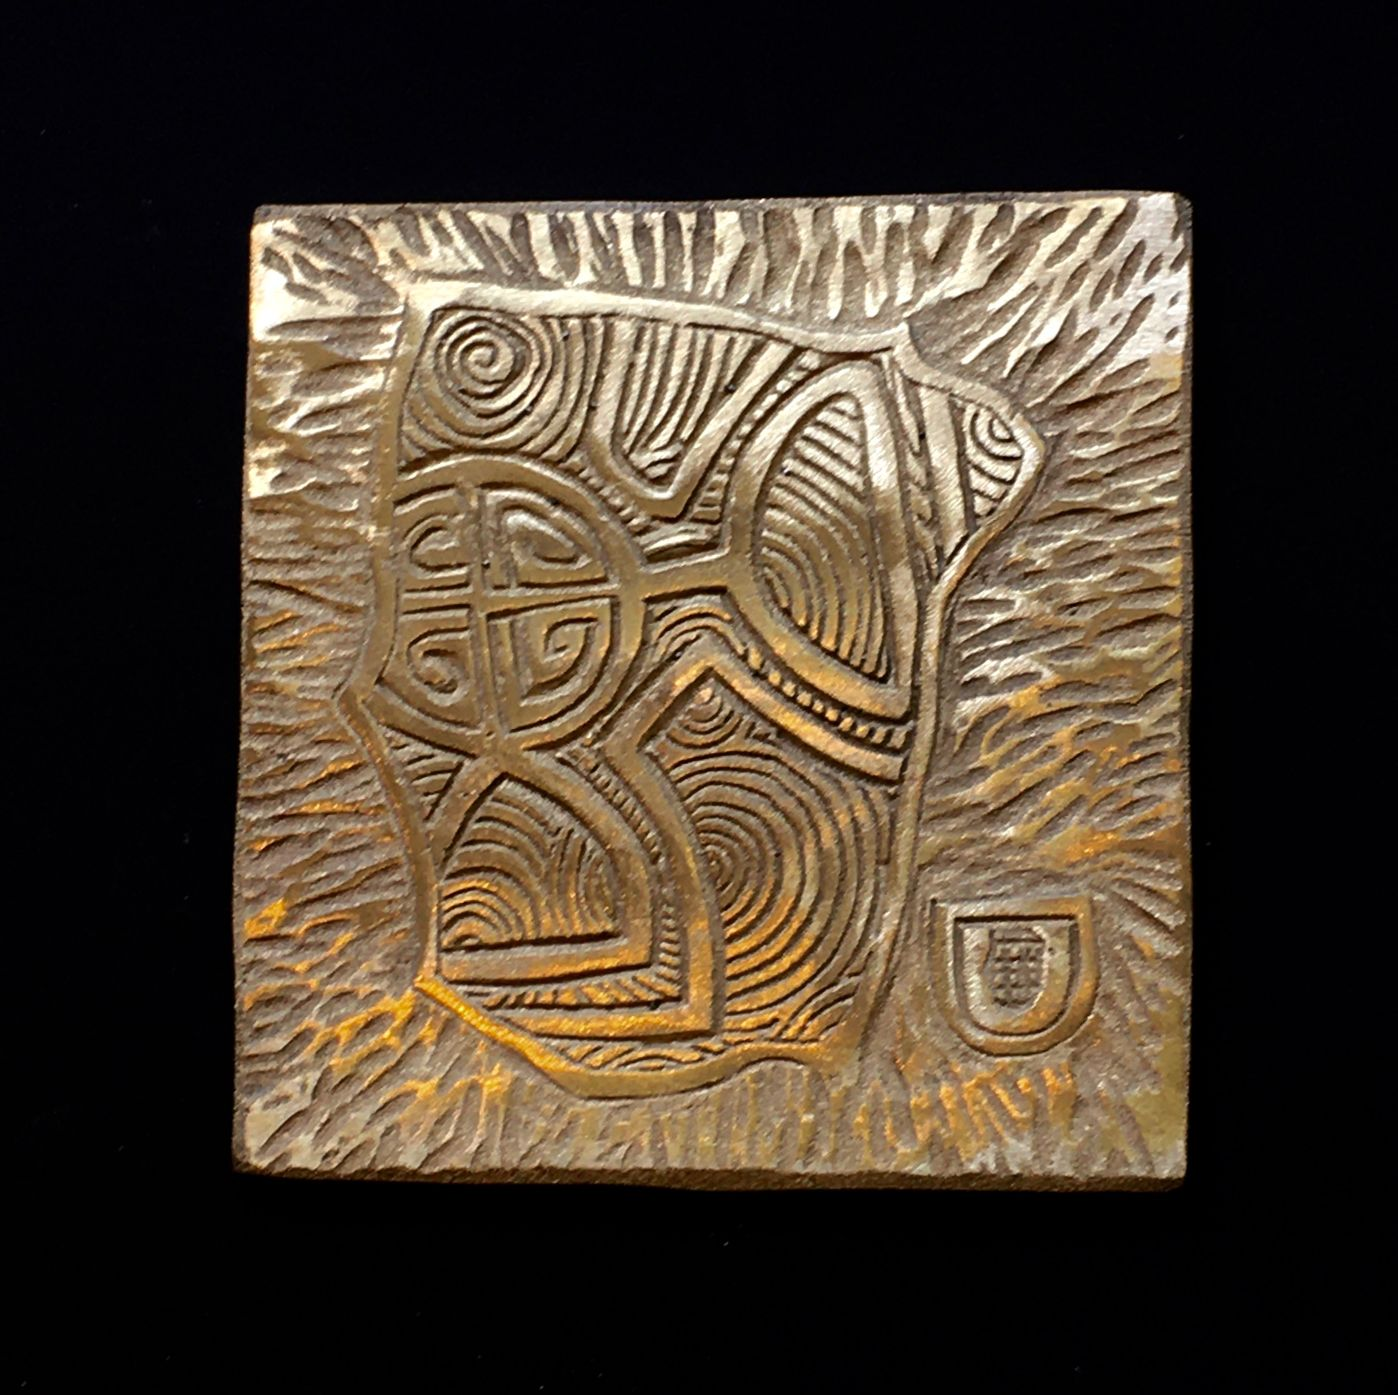 Series 5, Study no. 14 'Celts and Picts 2'. Low relief bronze plaque in black box frame